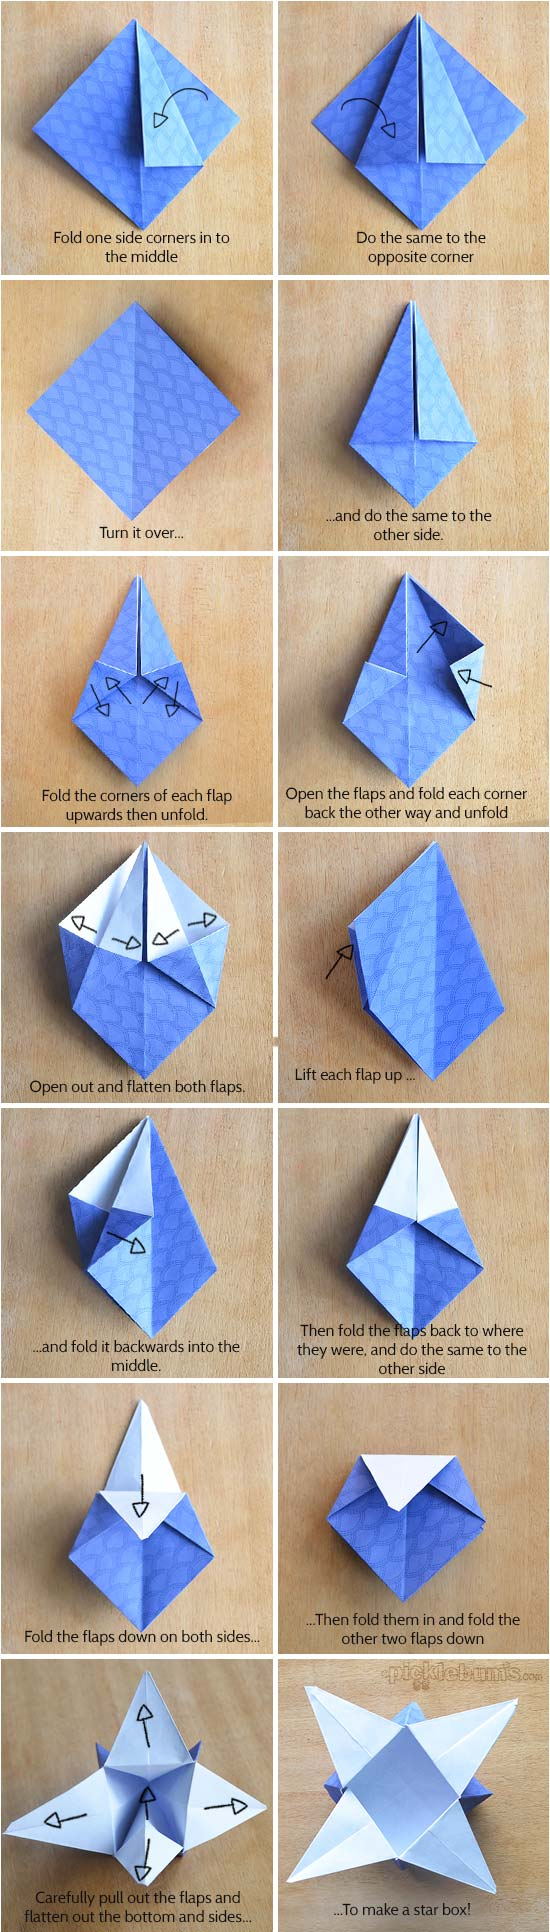 How To Make Origami Star Boxes And Free Printable Paper So You Can Some